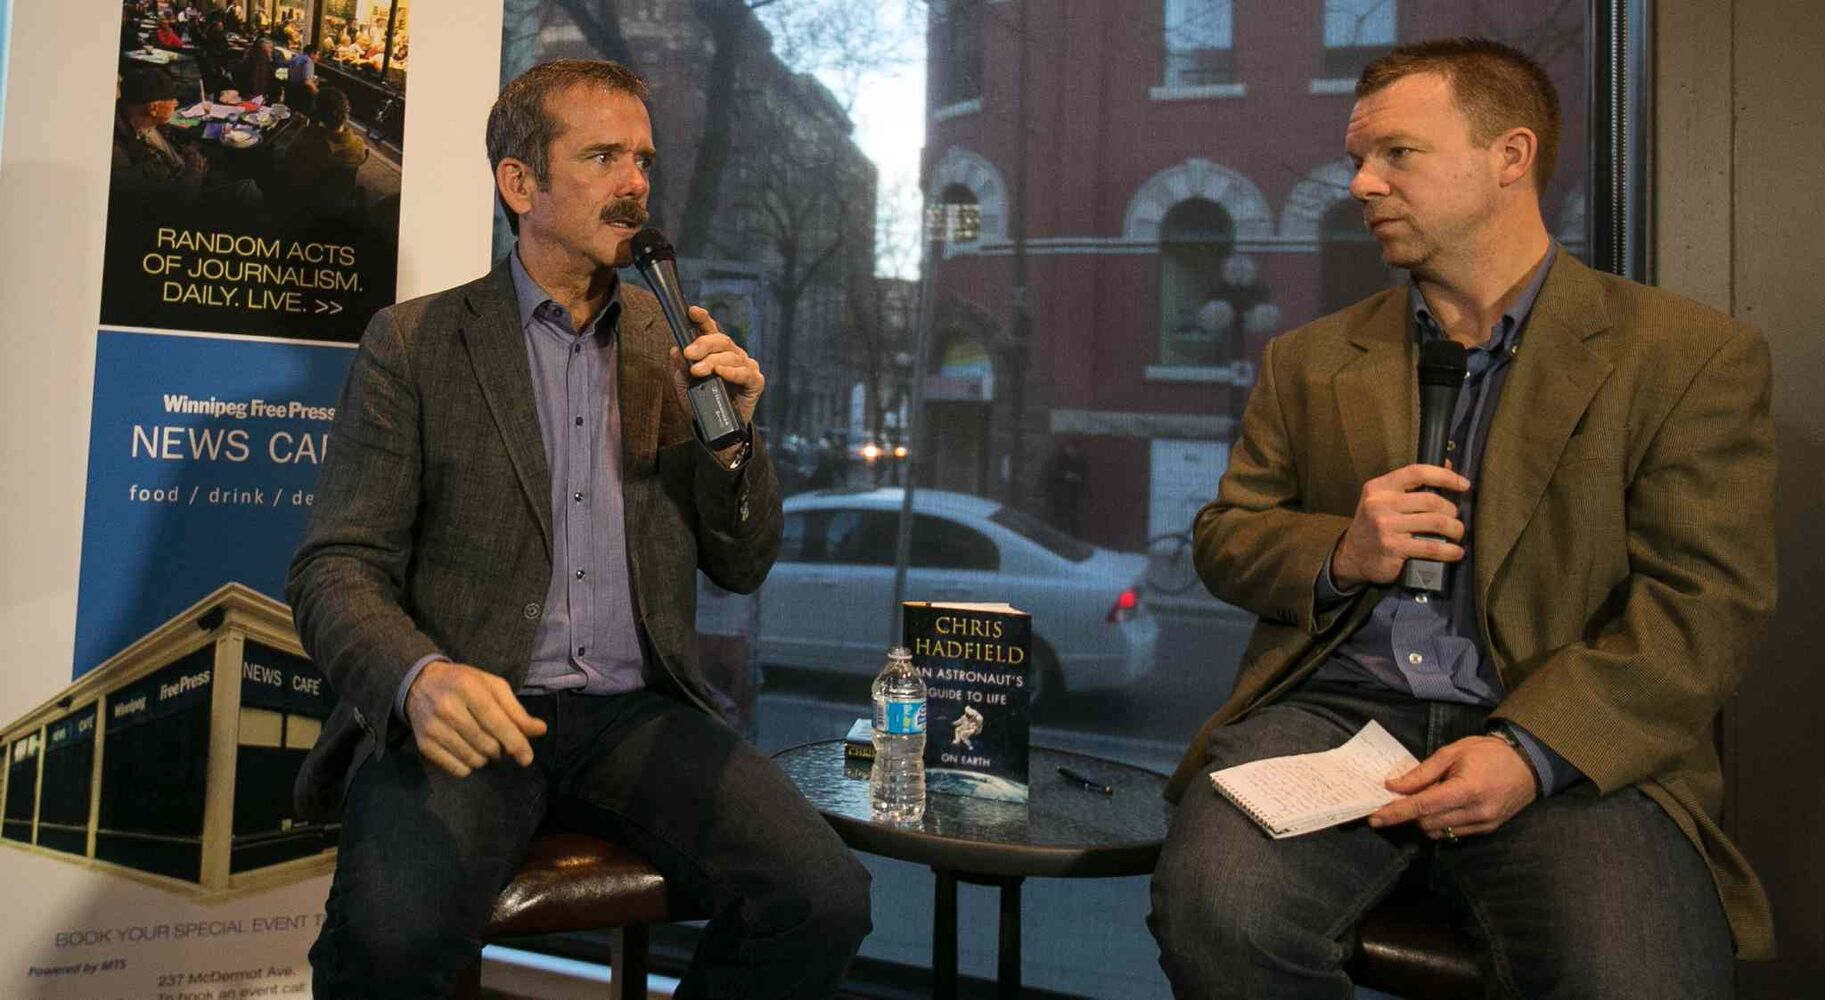 Col. Chris Hadfield (left) talks with reporter Geoff Kirybson on the intricacies of space flight to a packed Winnipeg Free Press News Café on Wednesday. (Melissa Tait / Winnipeg Free Press)